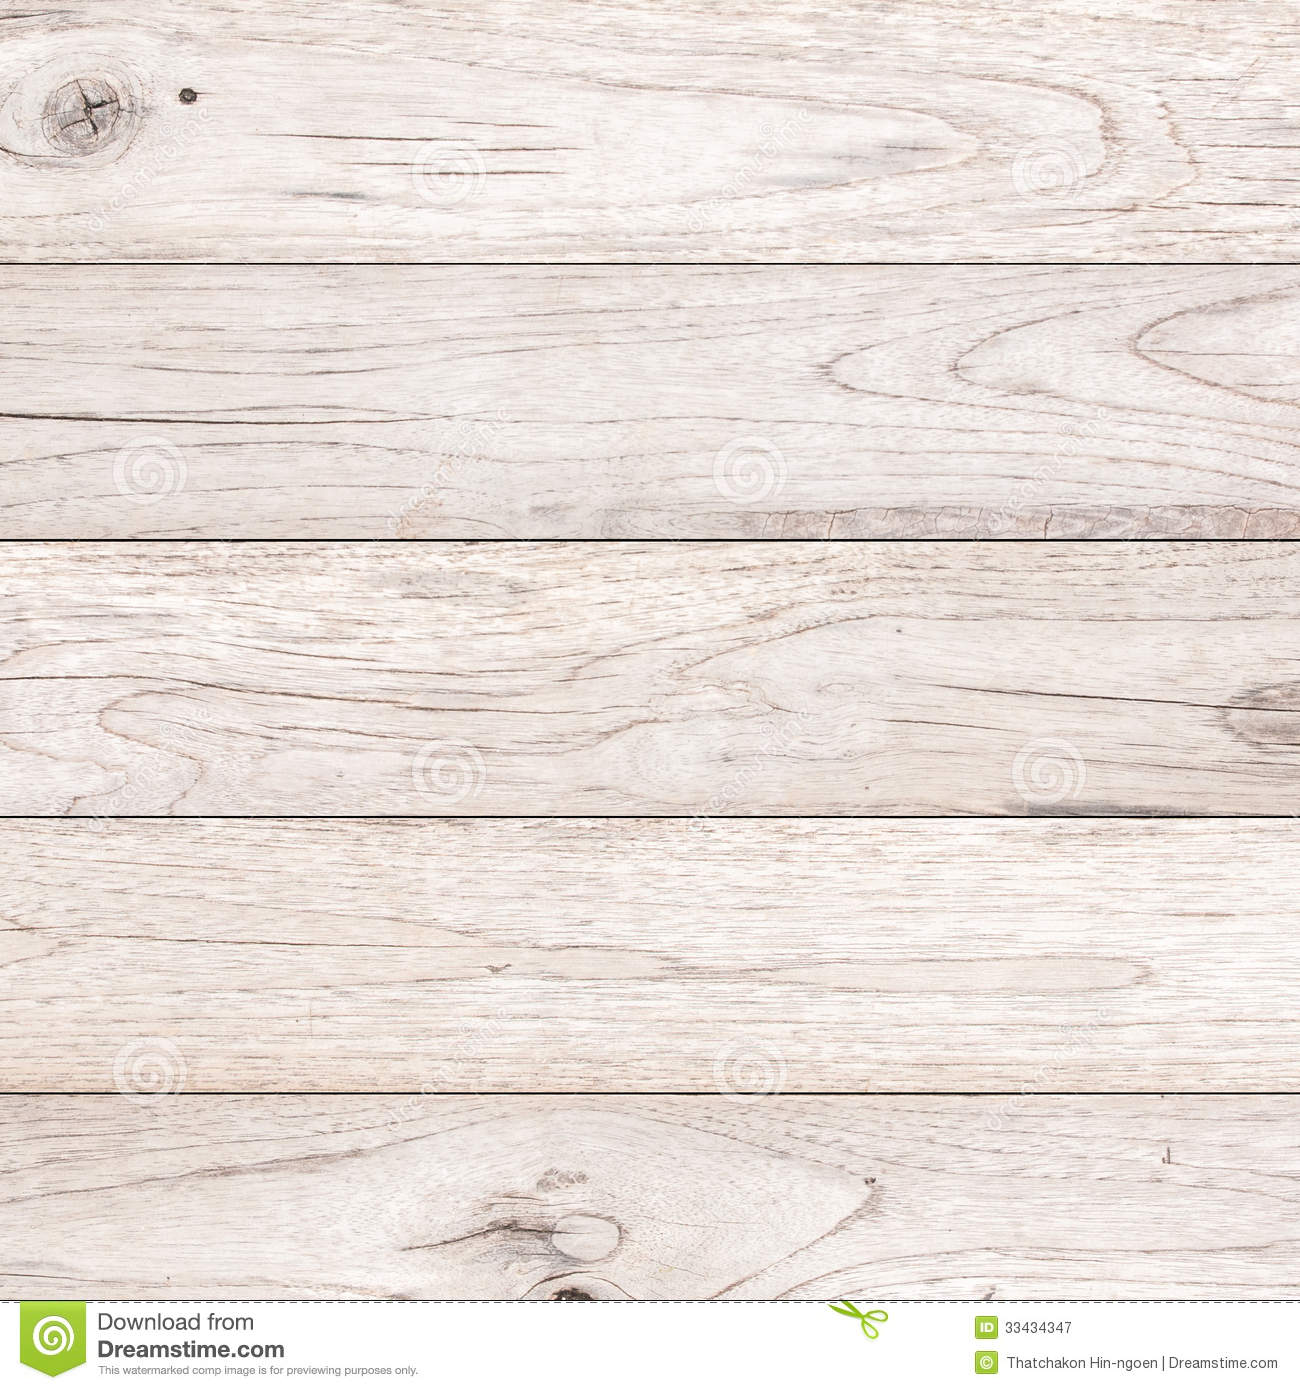 planche en bois blanche image stock image du planche 33434347. Black Bedroom Furniture Sets. Home Design Ideas